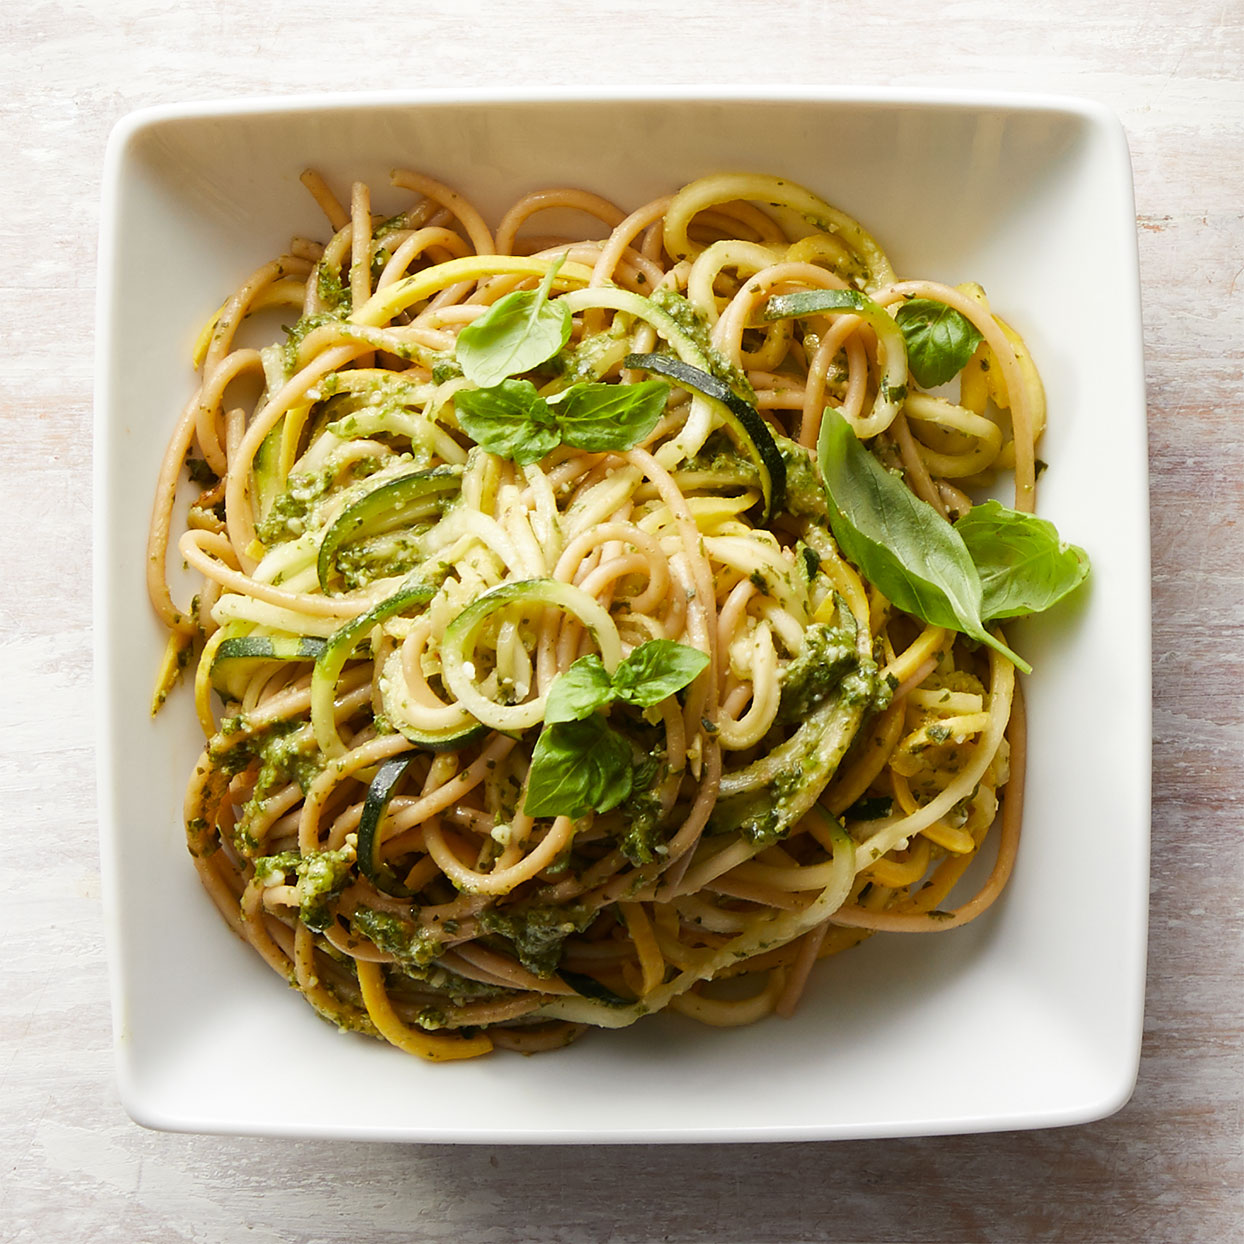 Basil is the backbone of this vibrant no-cook basil-walnut pesto sauce. Toss in some leftover roast chicken or pork with these zucchini noodles for a heartier meal. Source: Diabetic Living Magazine, Spring 2020